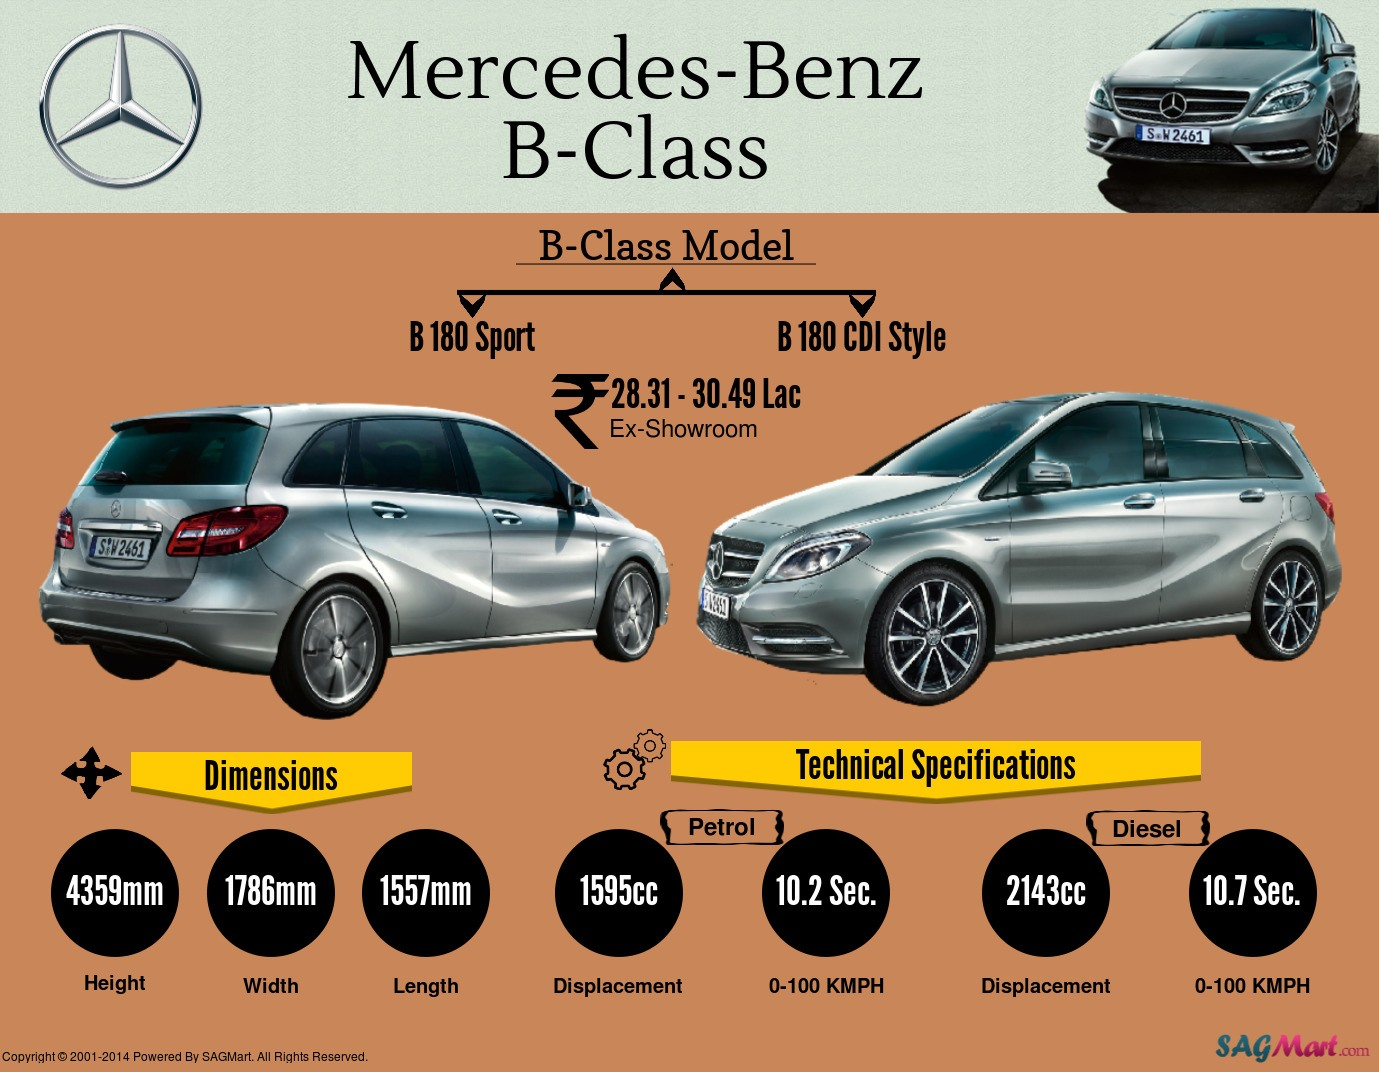 mercedes benz b class luxury car specifications infographic sagmart. Black Bedroom Furniture Sets. Home Design Ideas